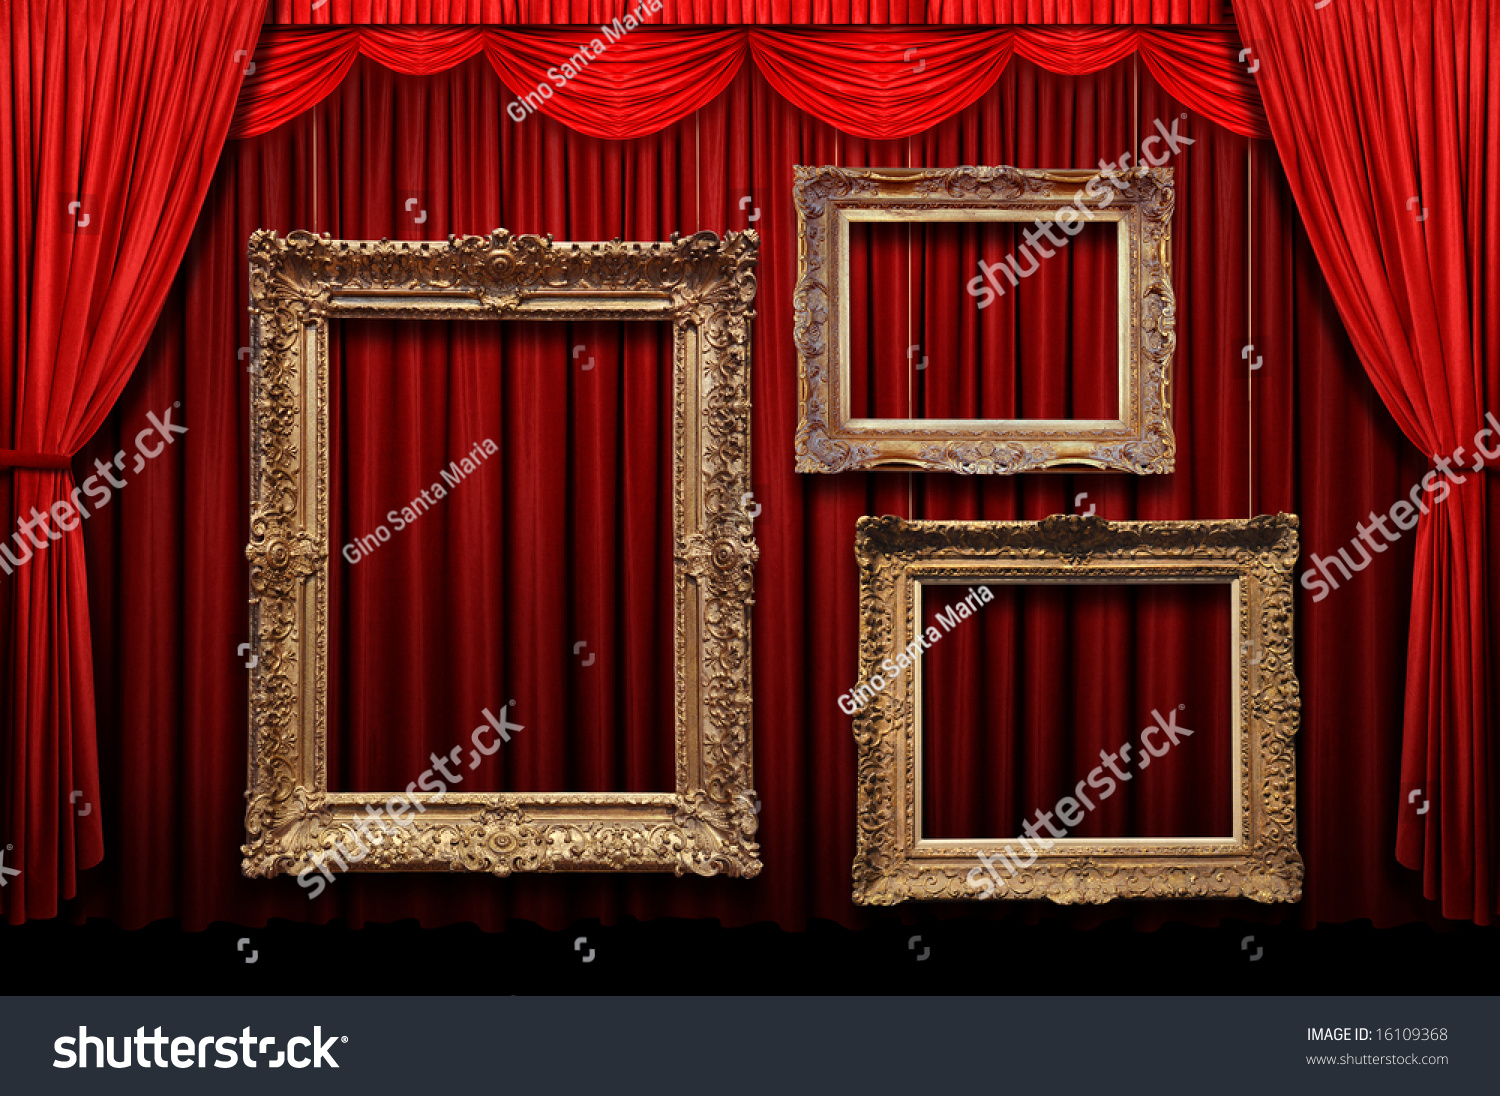 Red stage curtains - Red Stage Curtain With Gold Frames Preview Save To A Lightbox